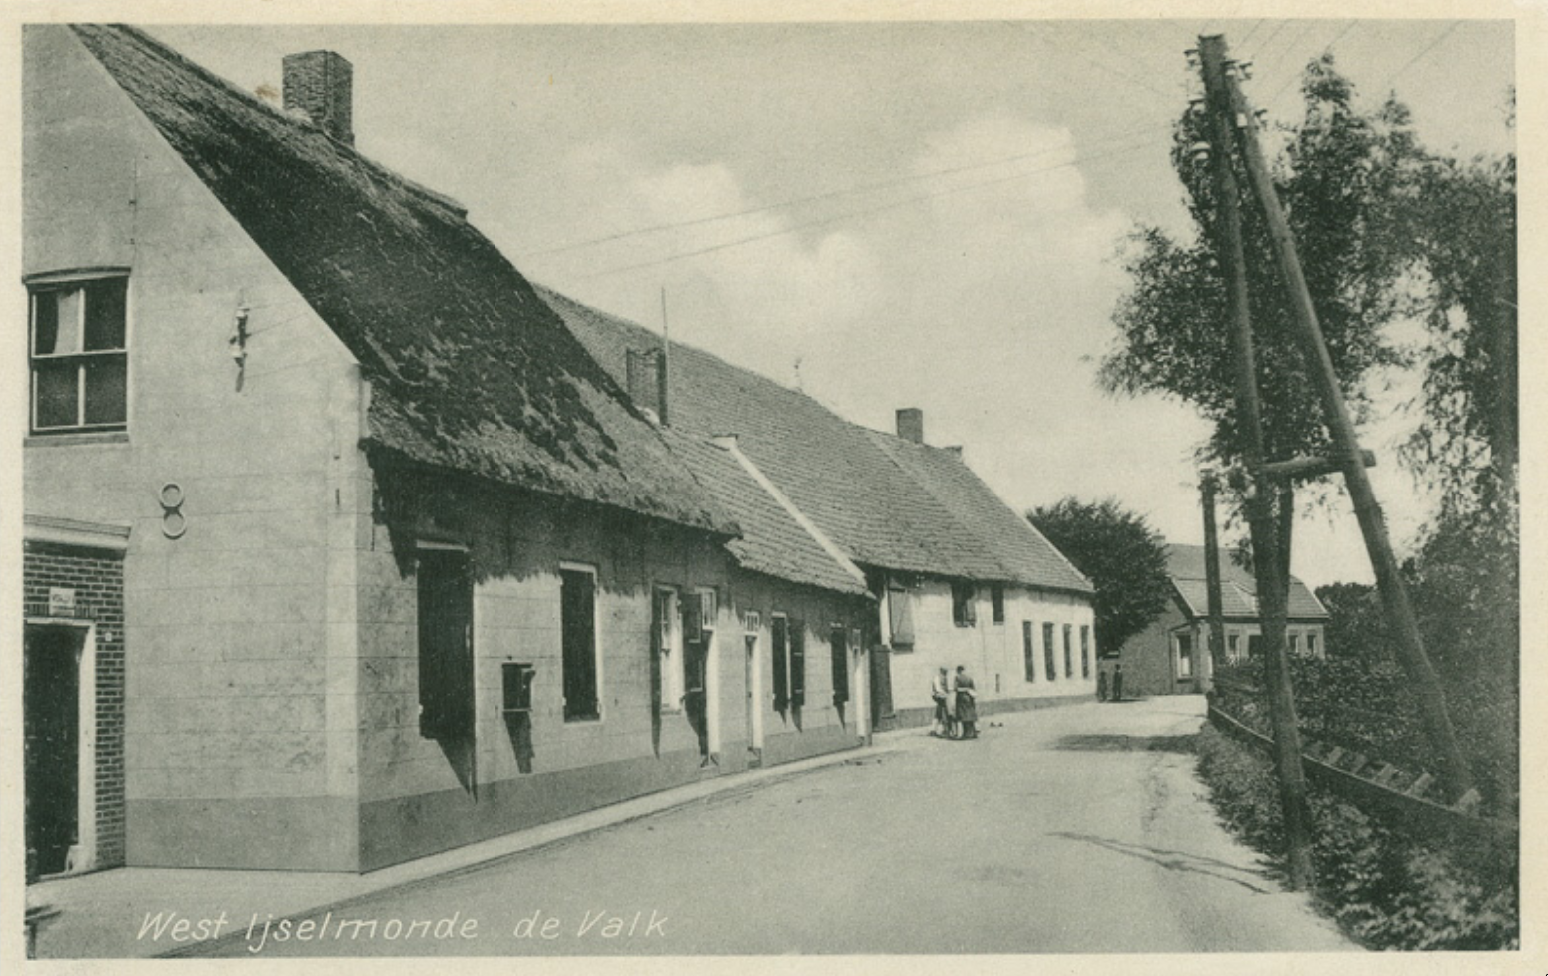 A view of part of the Hordijk from around 1930. Source: Stadsarchief Rotterdam.